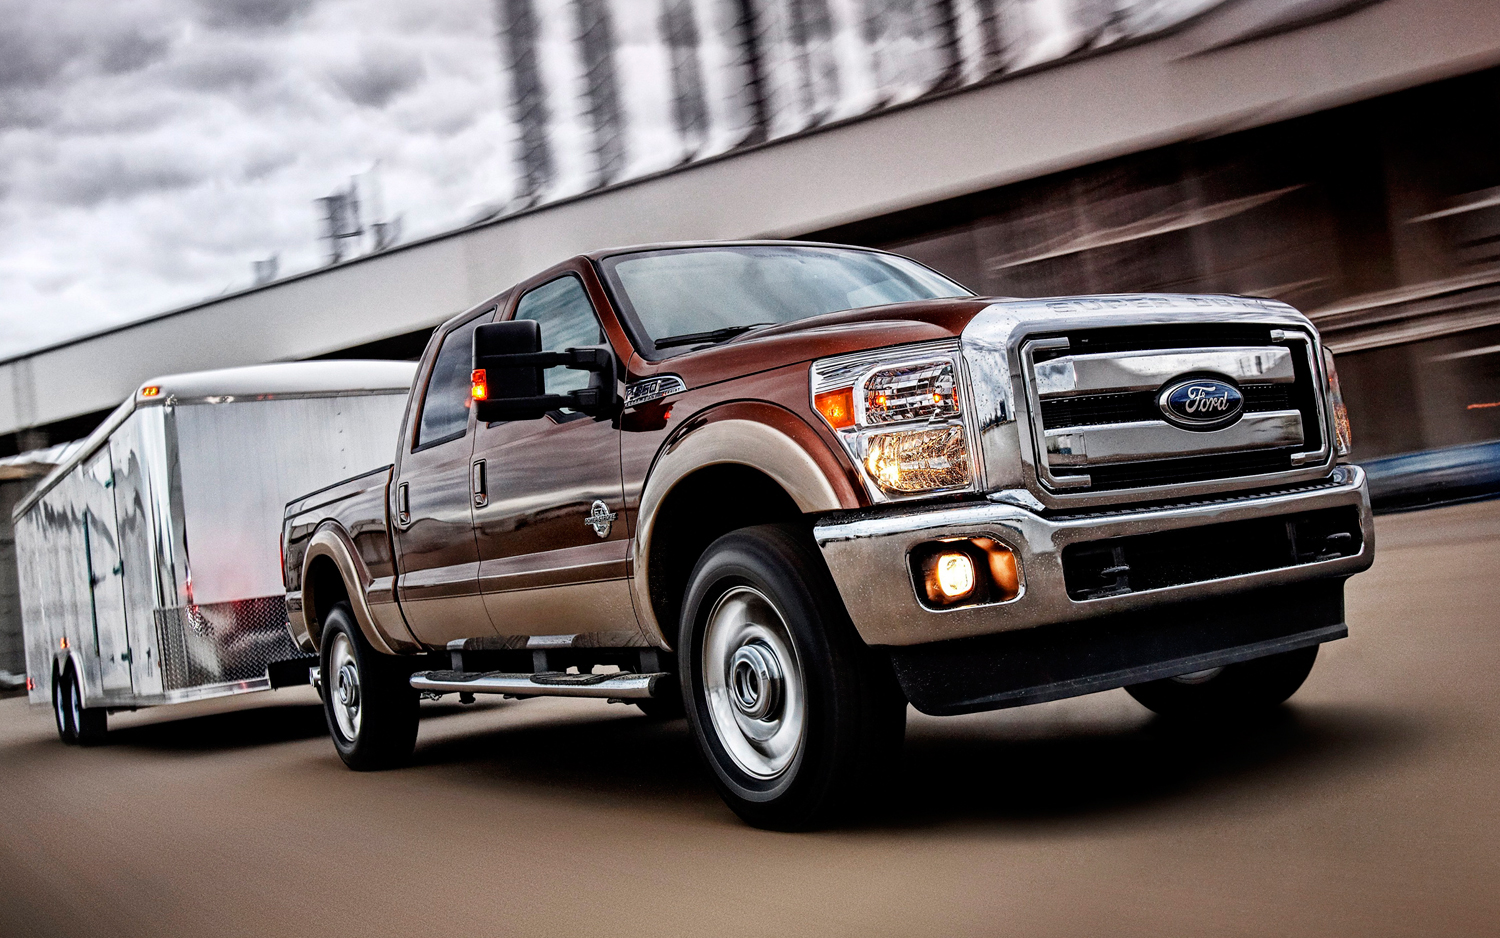 Ford F-350 Super Duty #8